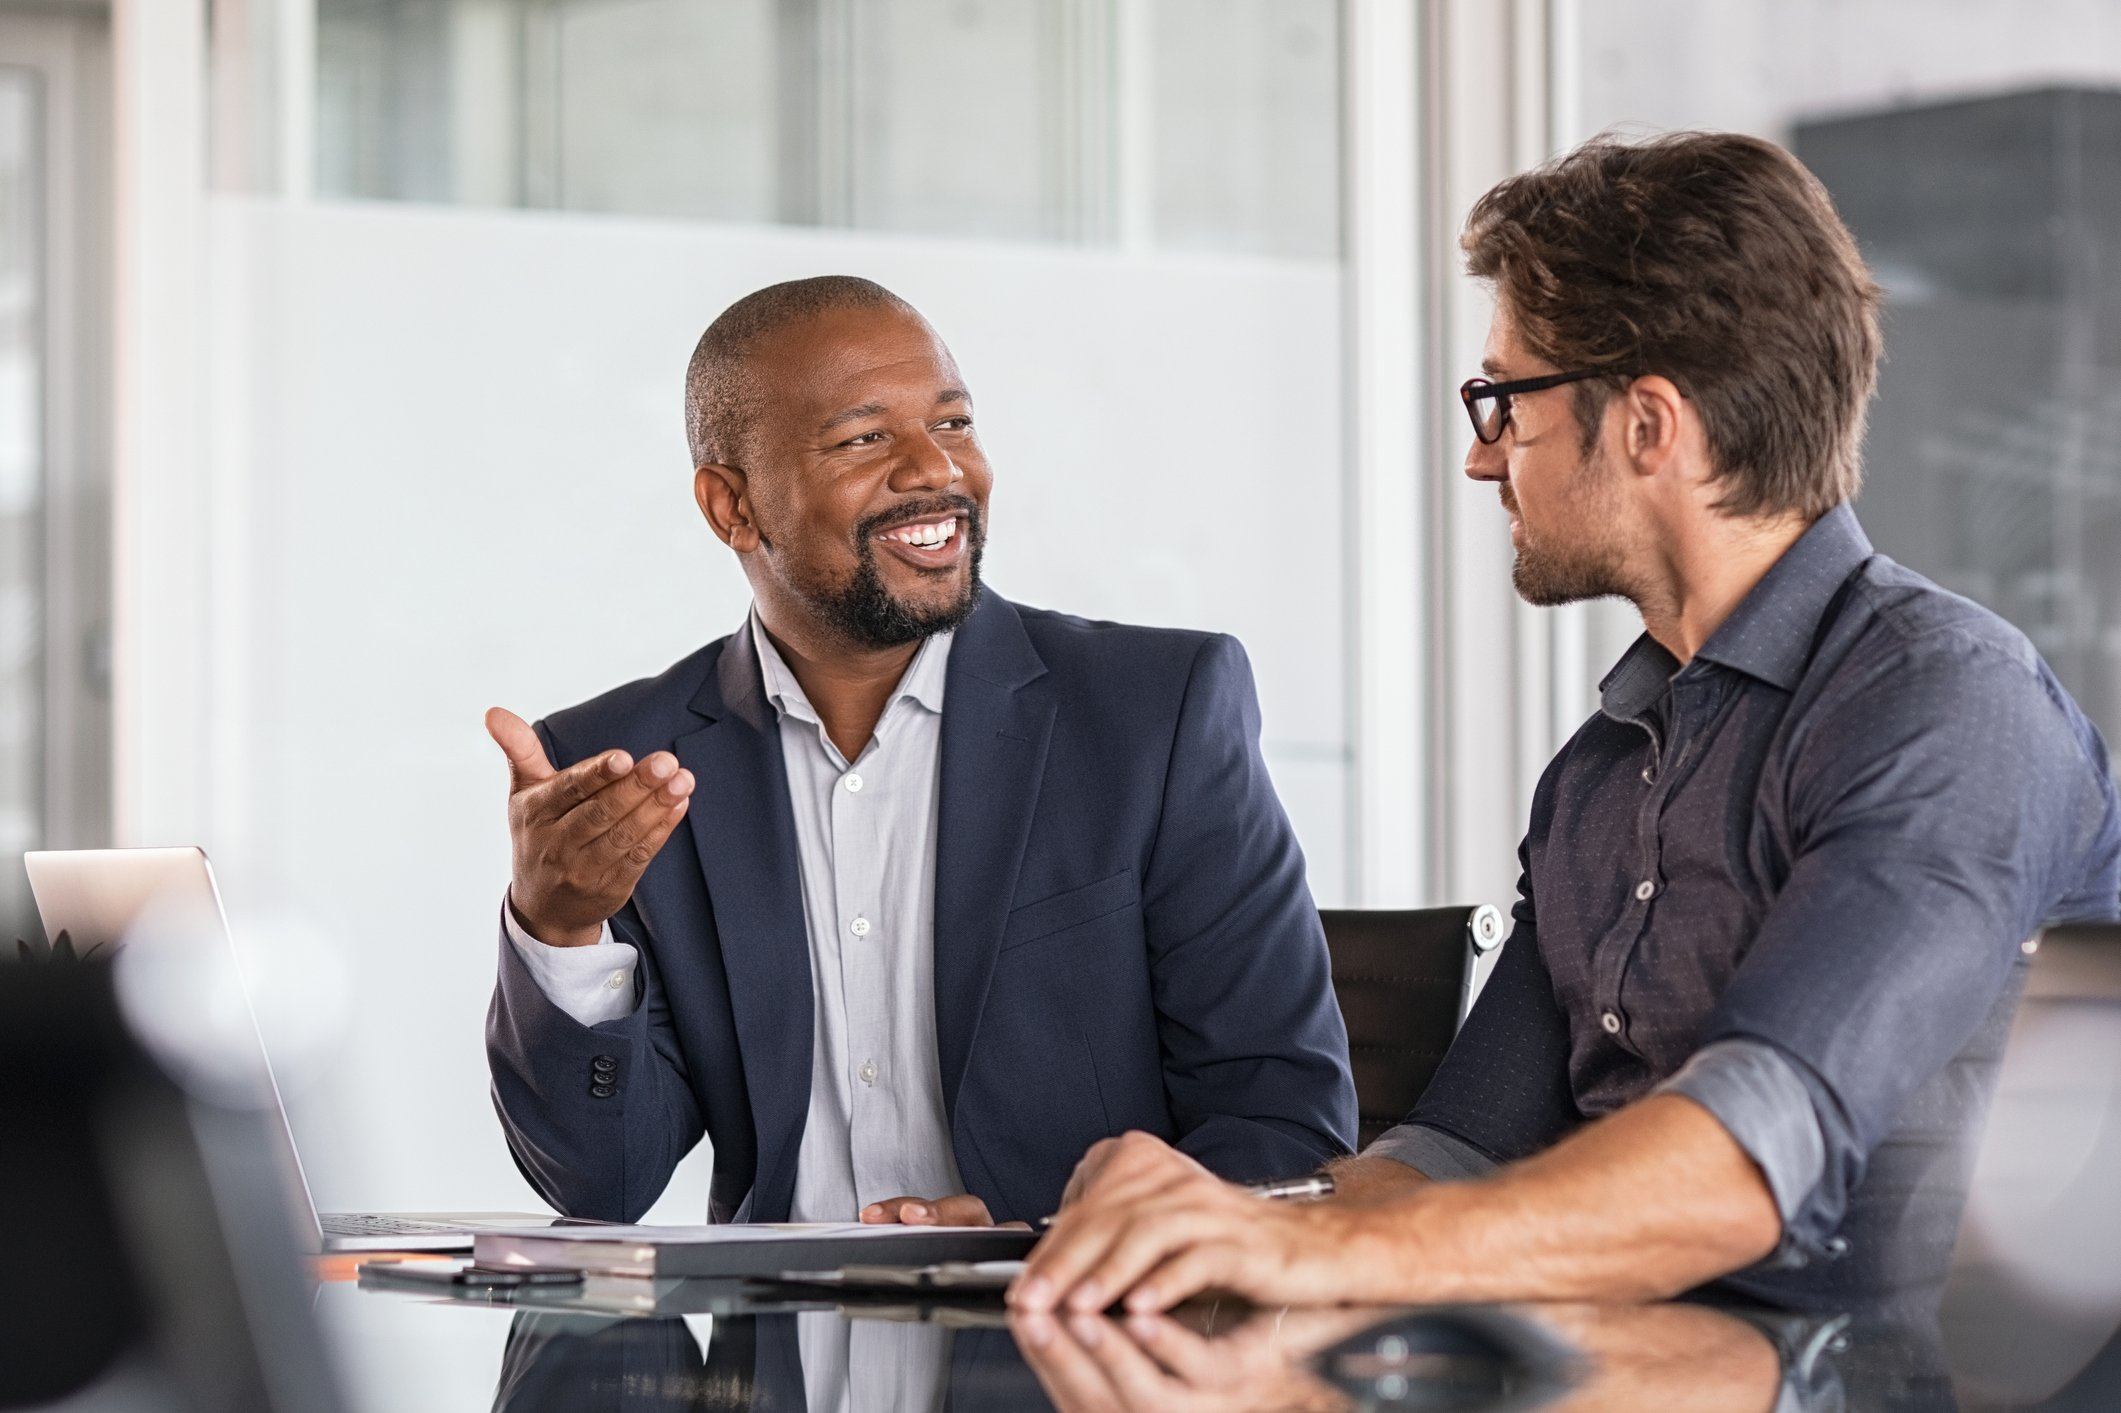 Get The Best Deal with These 5 Negotiation Tips